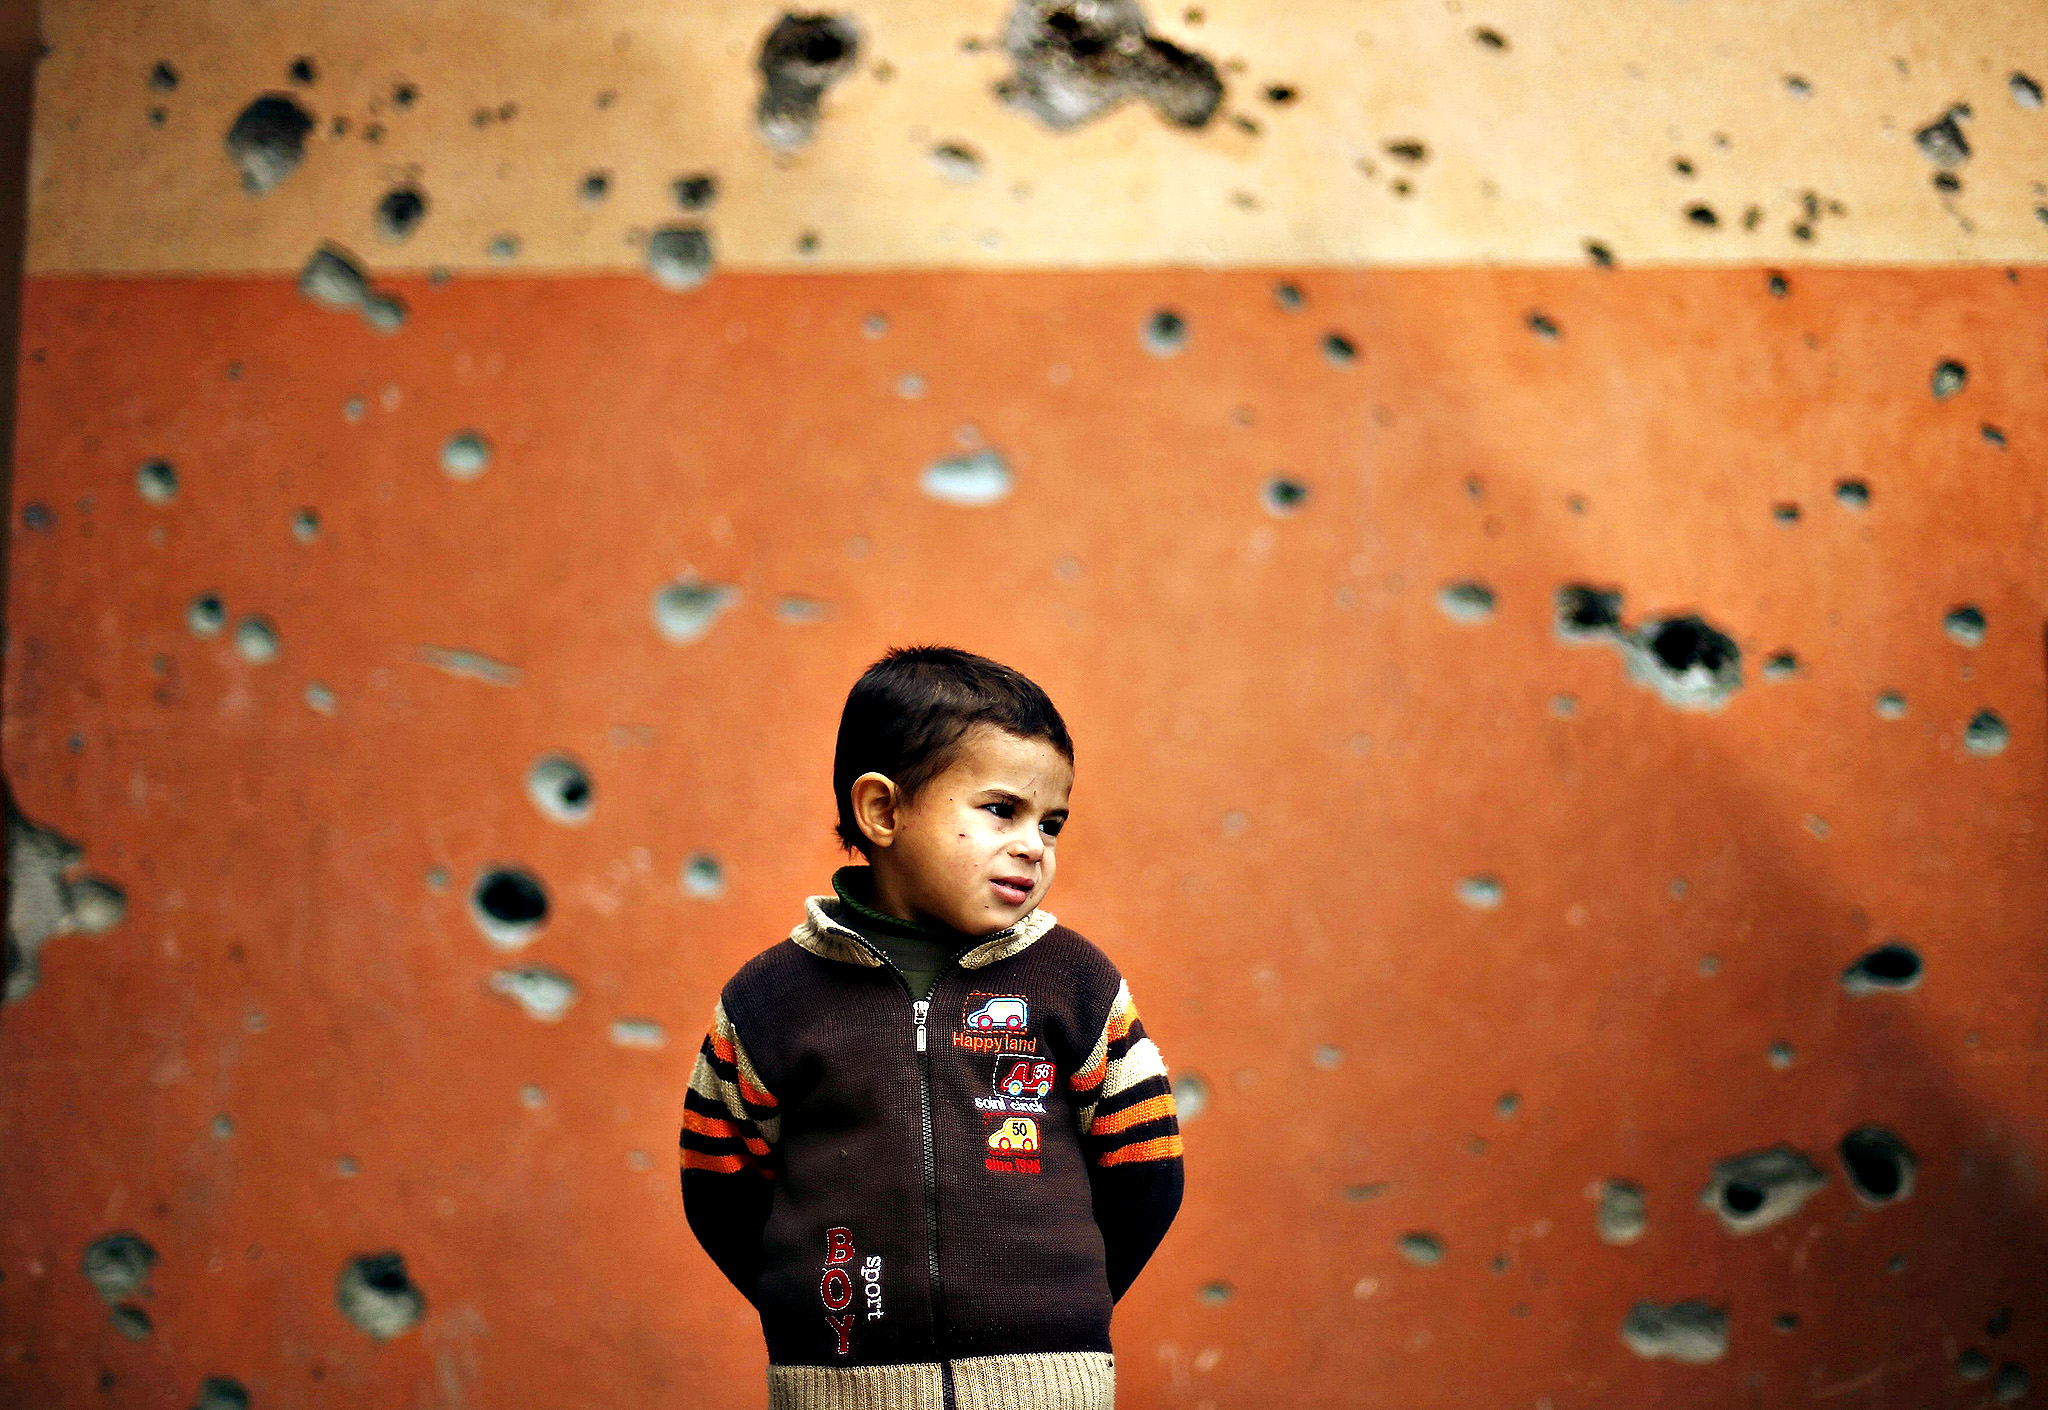 A Palestinian boy stands outside a mosque, that witnesses said was damaged by Israeli shelling during the most recent conflict between Israel and Hamas, on a winter day in Beit Hanoun town, northern Gaza Strip, November 25, 2014.